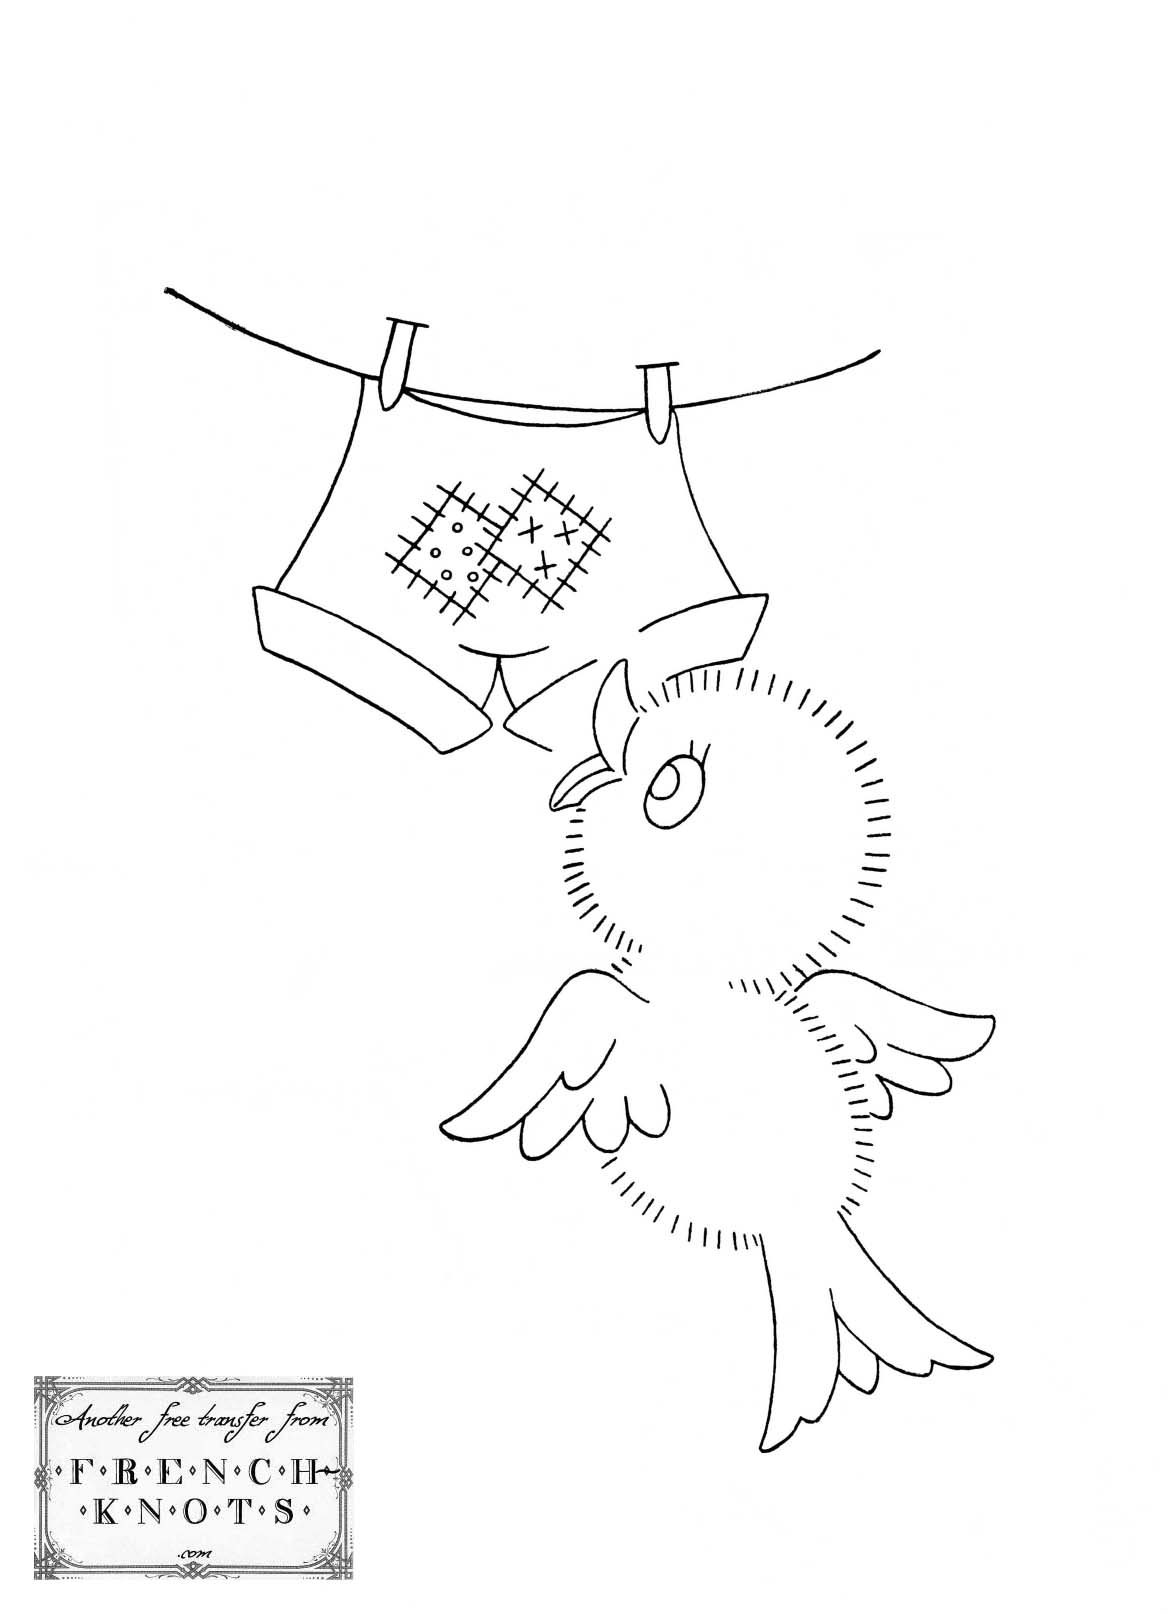 chick days of the week embroidery patterns